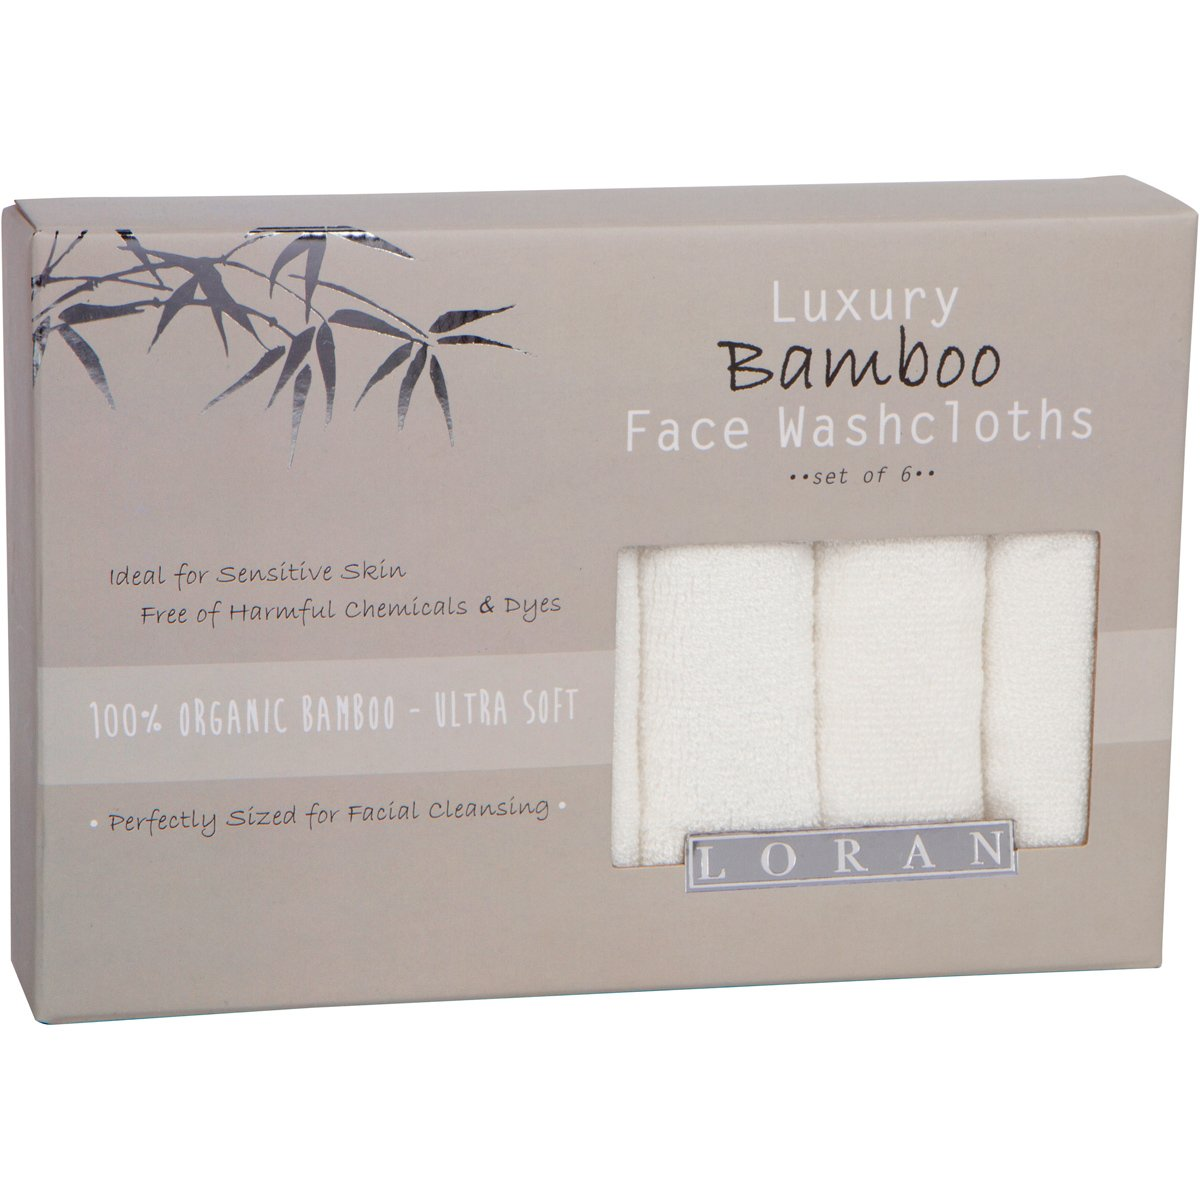 Luxury Bamboo Facial Washcloths